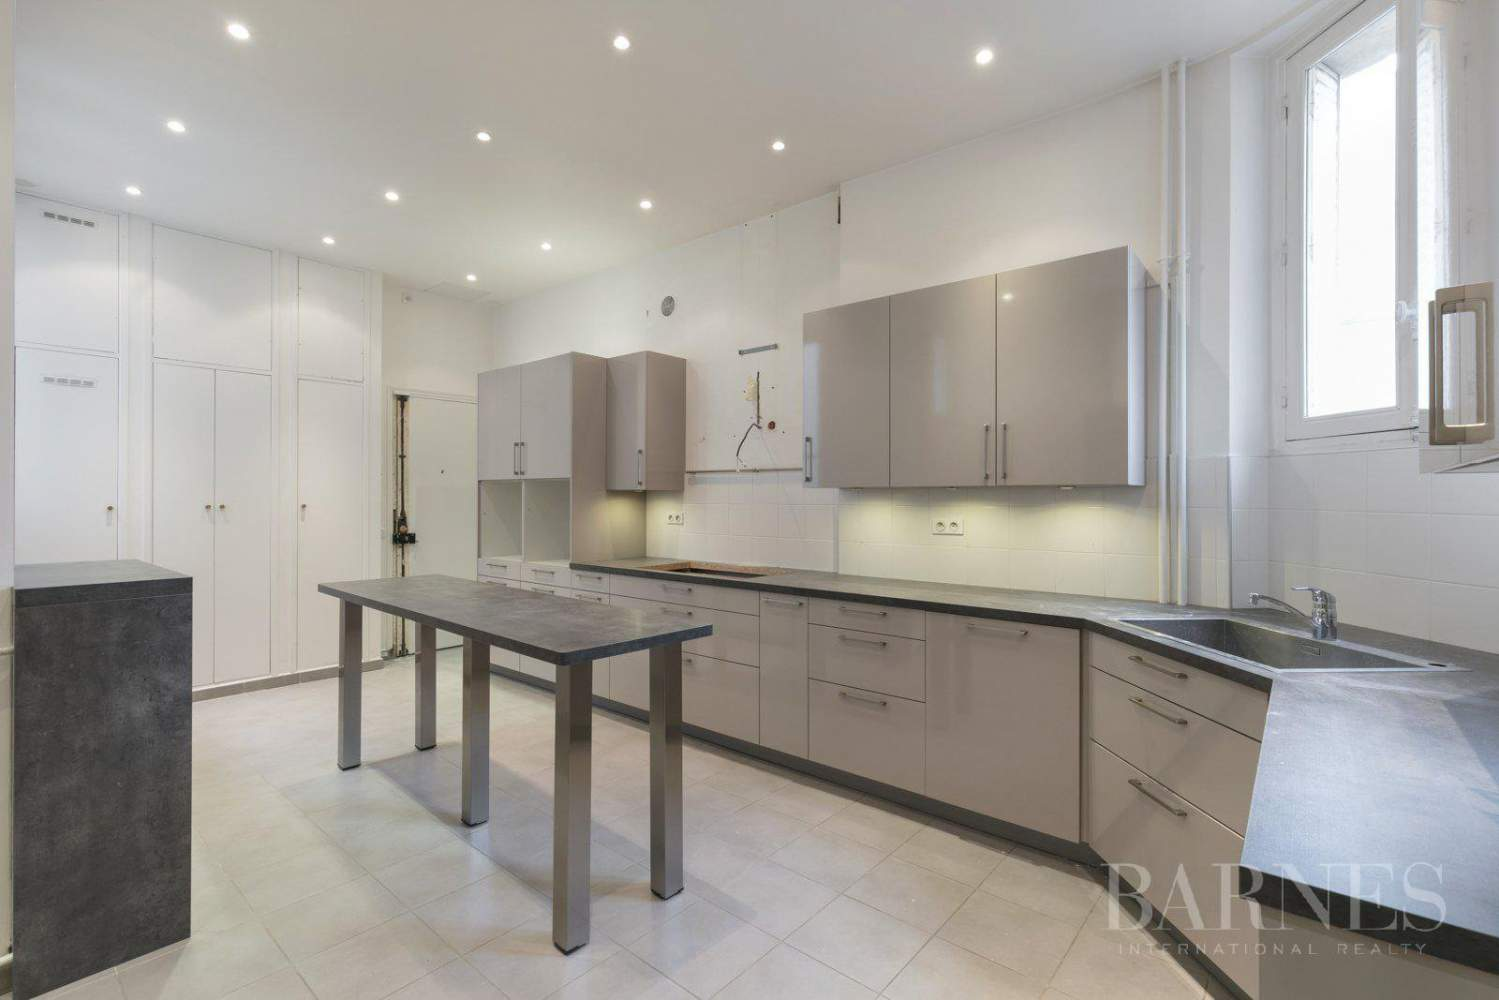 EXCLUSIVE - 8-ROOM APARTMENT FOR SALE - RENOVATED 1930s BUILDING - NEUILLY/PASTEUR picture 4